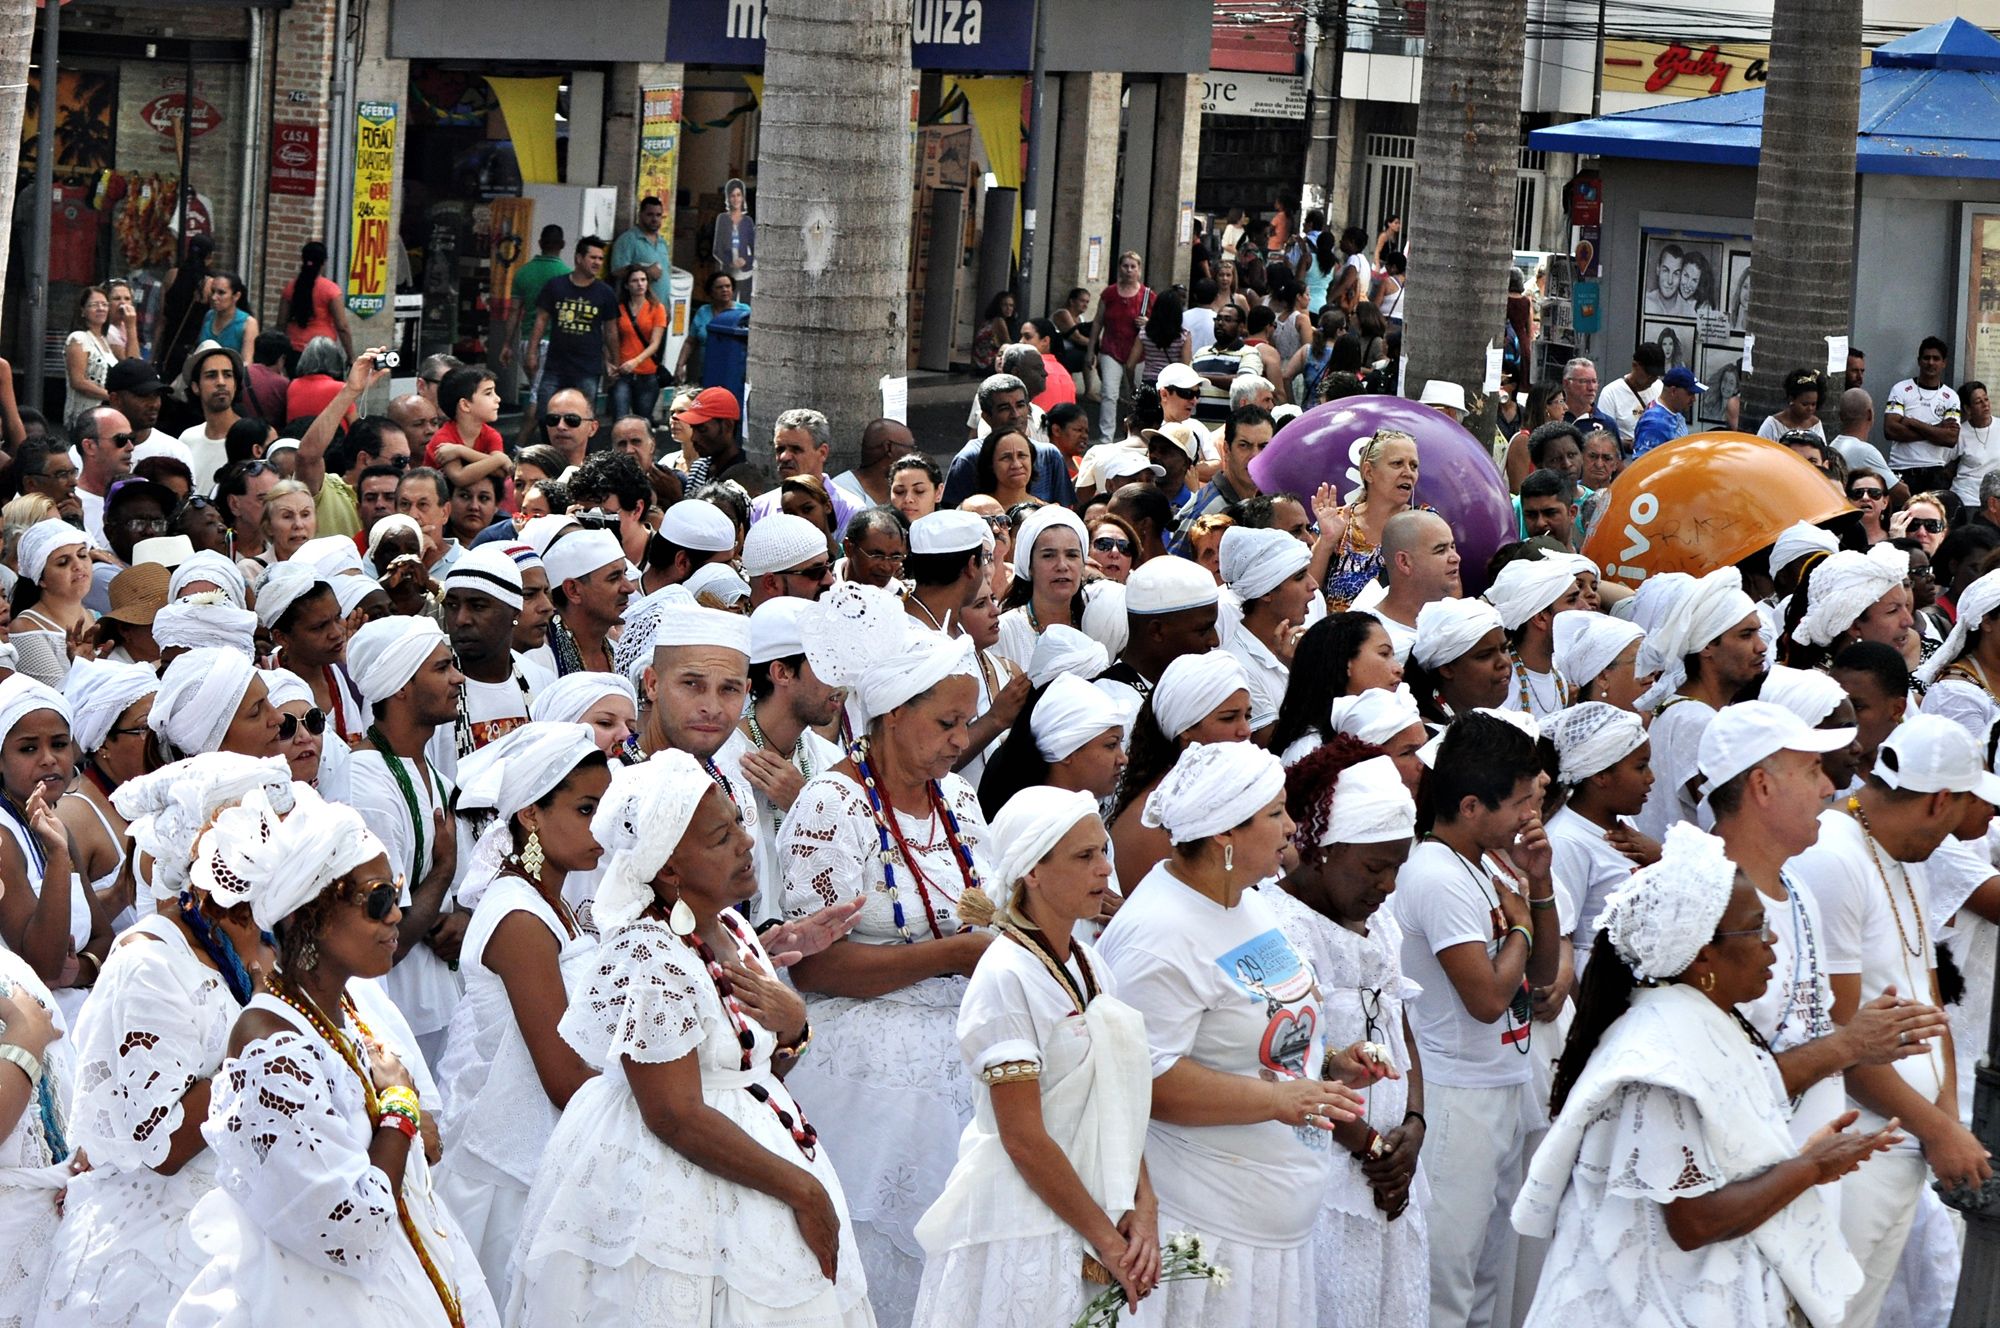 Millions of people follow Afro-Brazilian religions today. Photo  Robson B.Sampaio CC  BY-NC 2.0